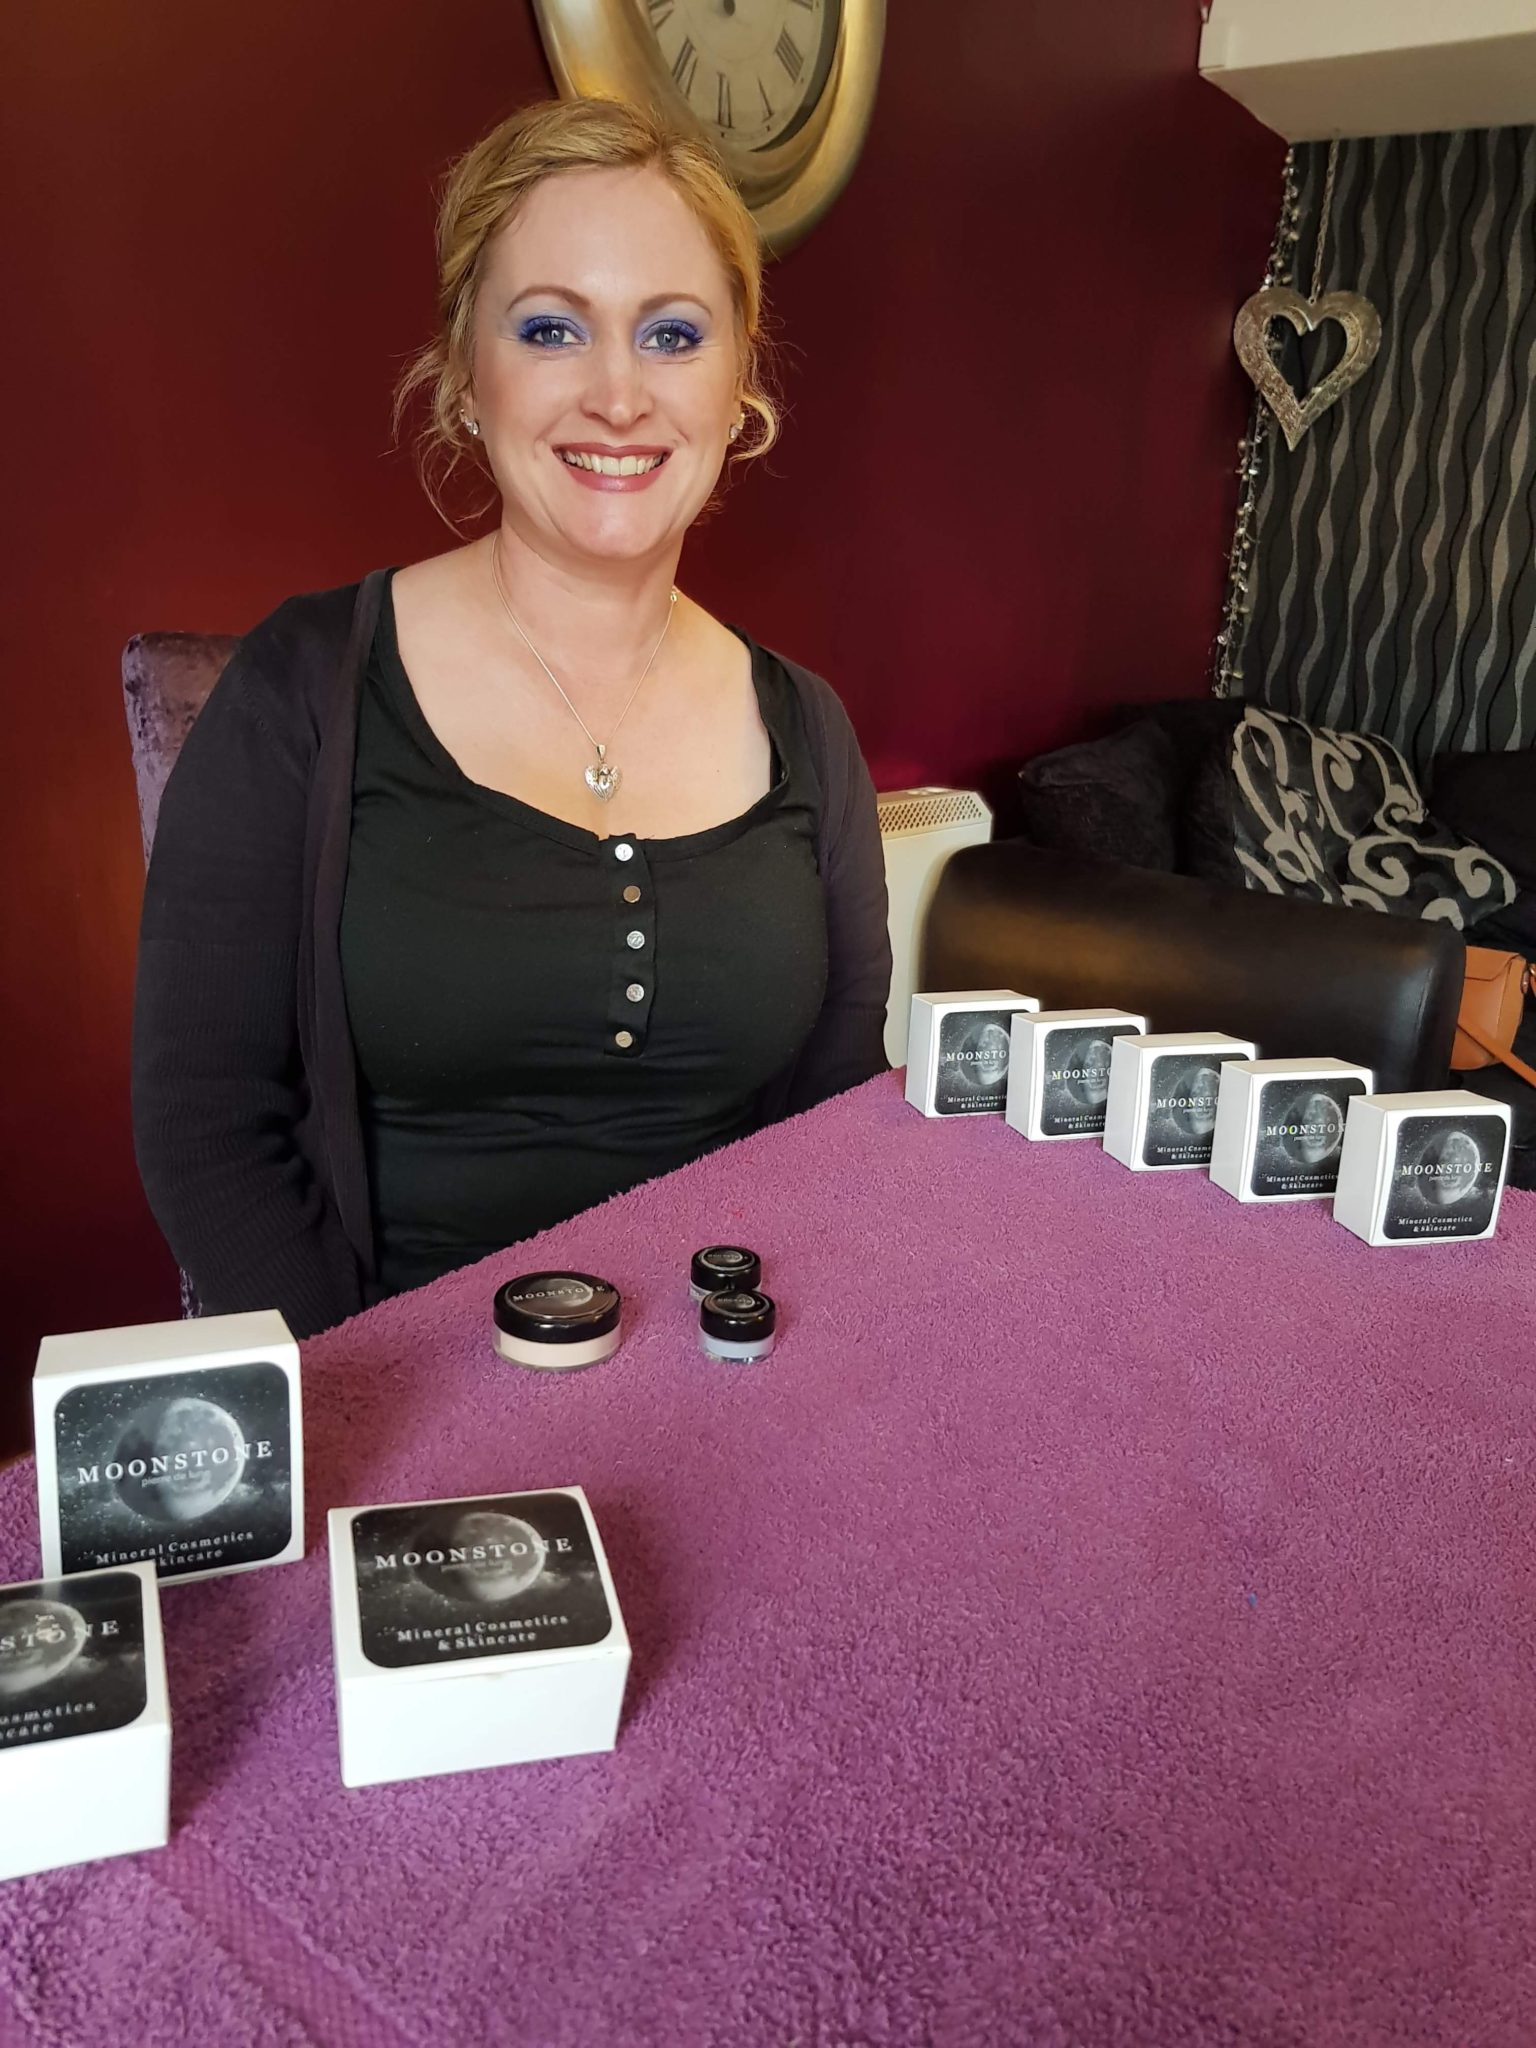 Mineral makeup brand 'Moonstone' set to launch in the North East